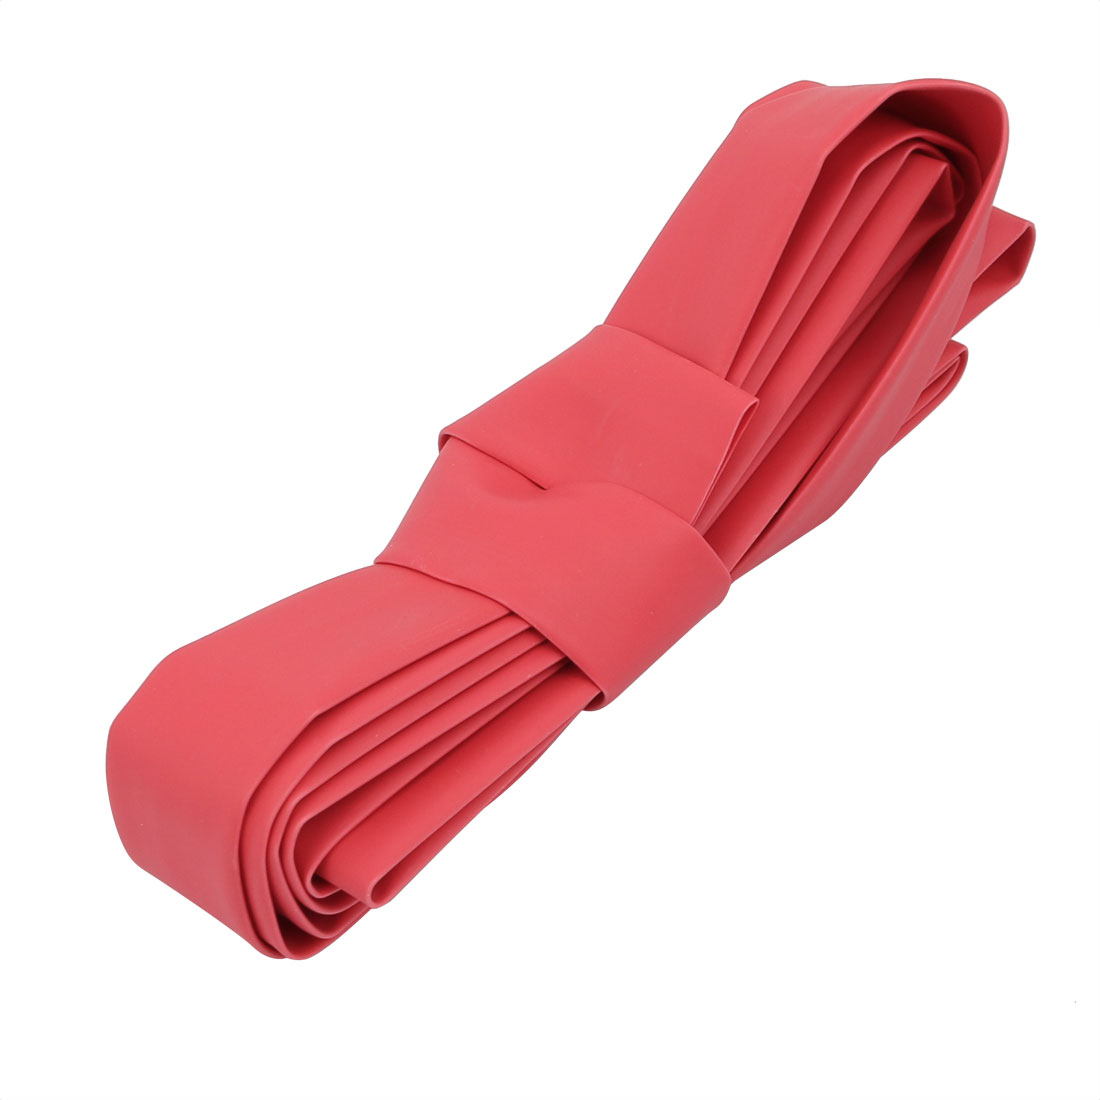 2M Long 12mm Inner Dia. Polyolefin Heat Shrinkable Tube Red for Wire Repairing